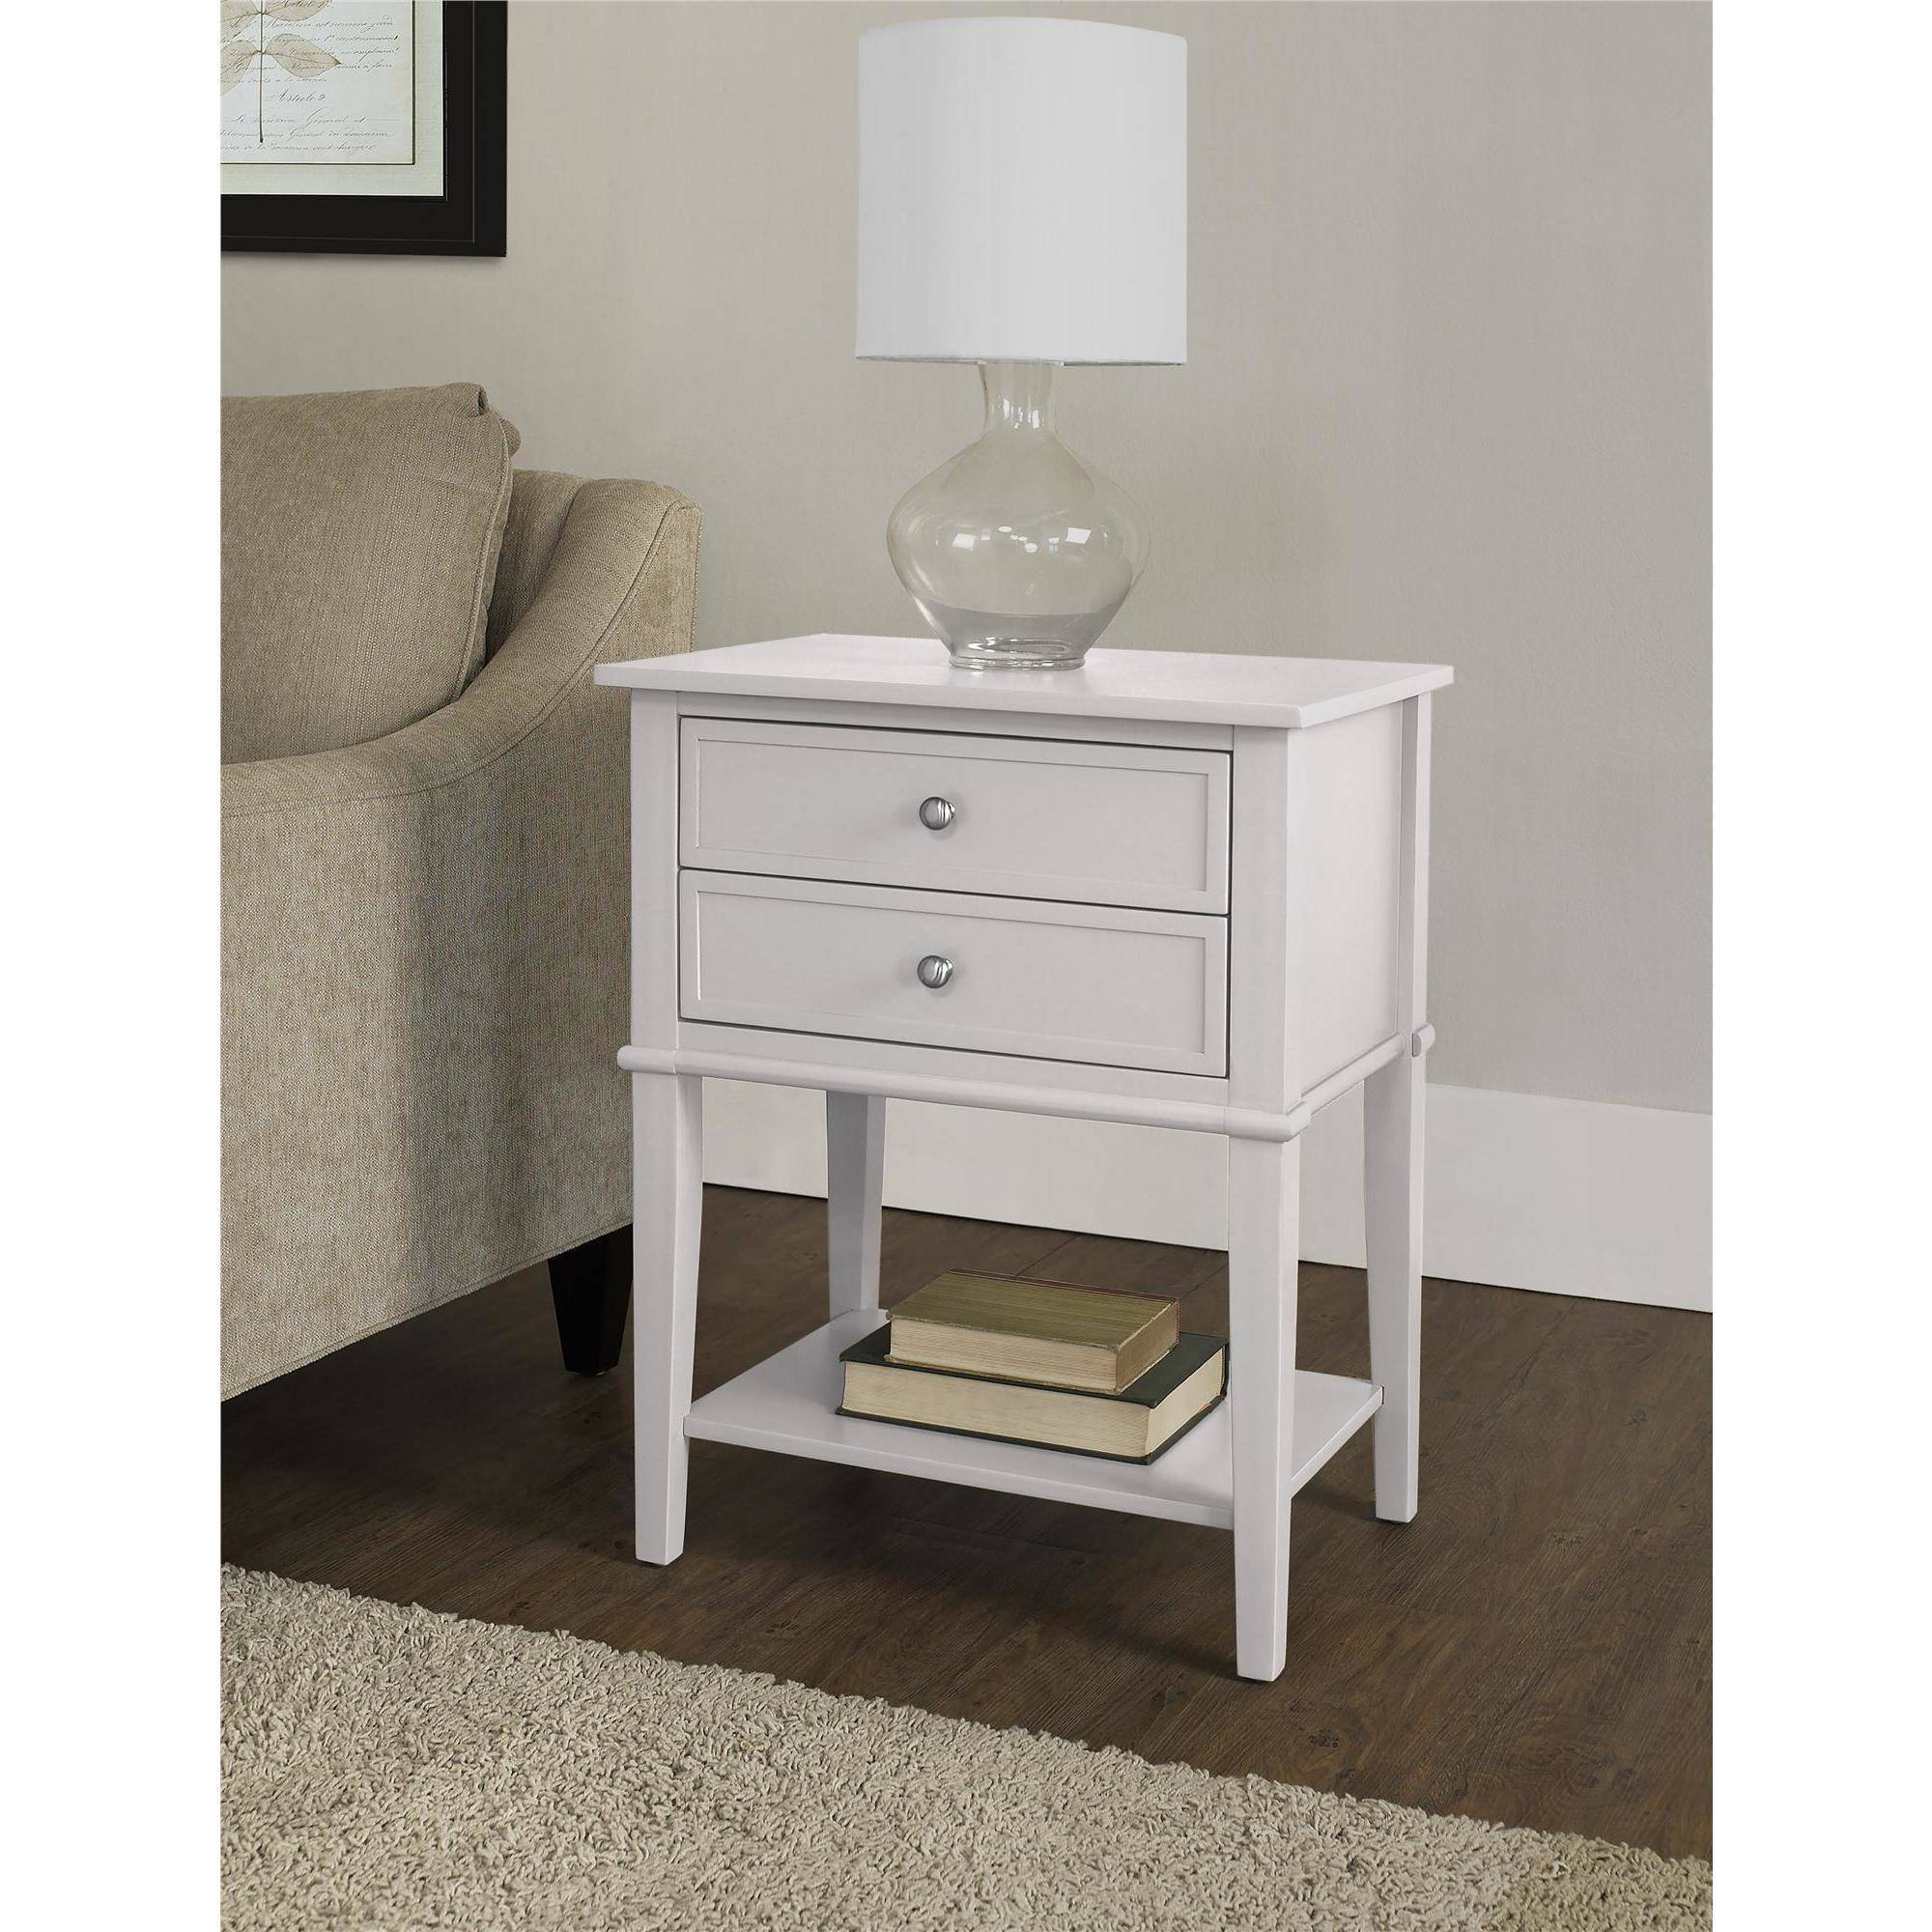 altra franklin accent table with drawers white end tables ture knotty pine bookcase battery operated living room lamps garden patio mirrored side folding outdoor dining making